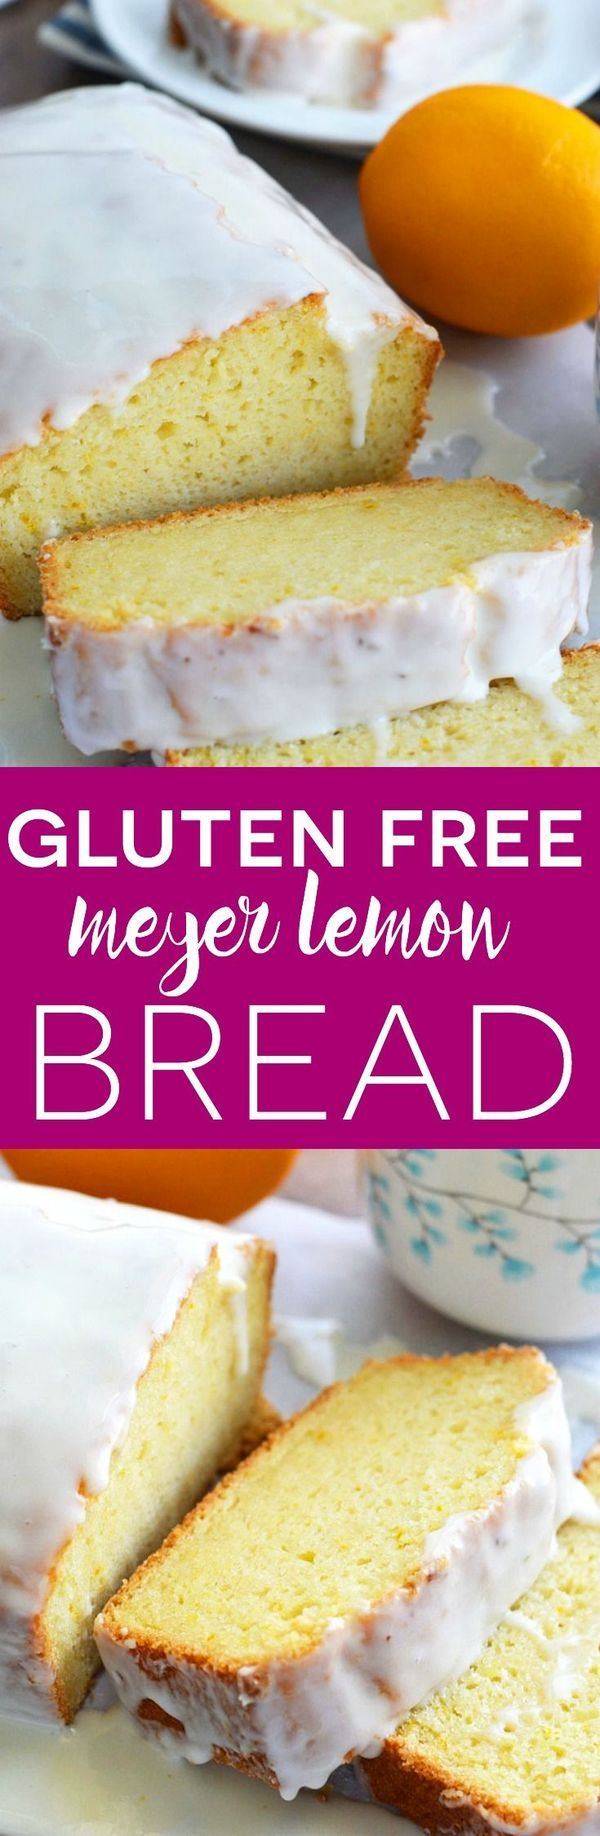 Gluten Free Meyer Lemon Bread (and dairy free) - This easy bread recipe is brightened up with fresh Meyer Lemon juice and zest - it's the perfect sweet citrus recipe. Quick bread recipe from @whattheforkblog | whattheforkfoodblog.com | gluten free breakfast recipes | gluten free baking